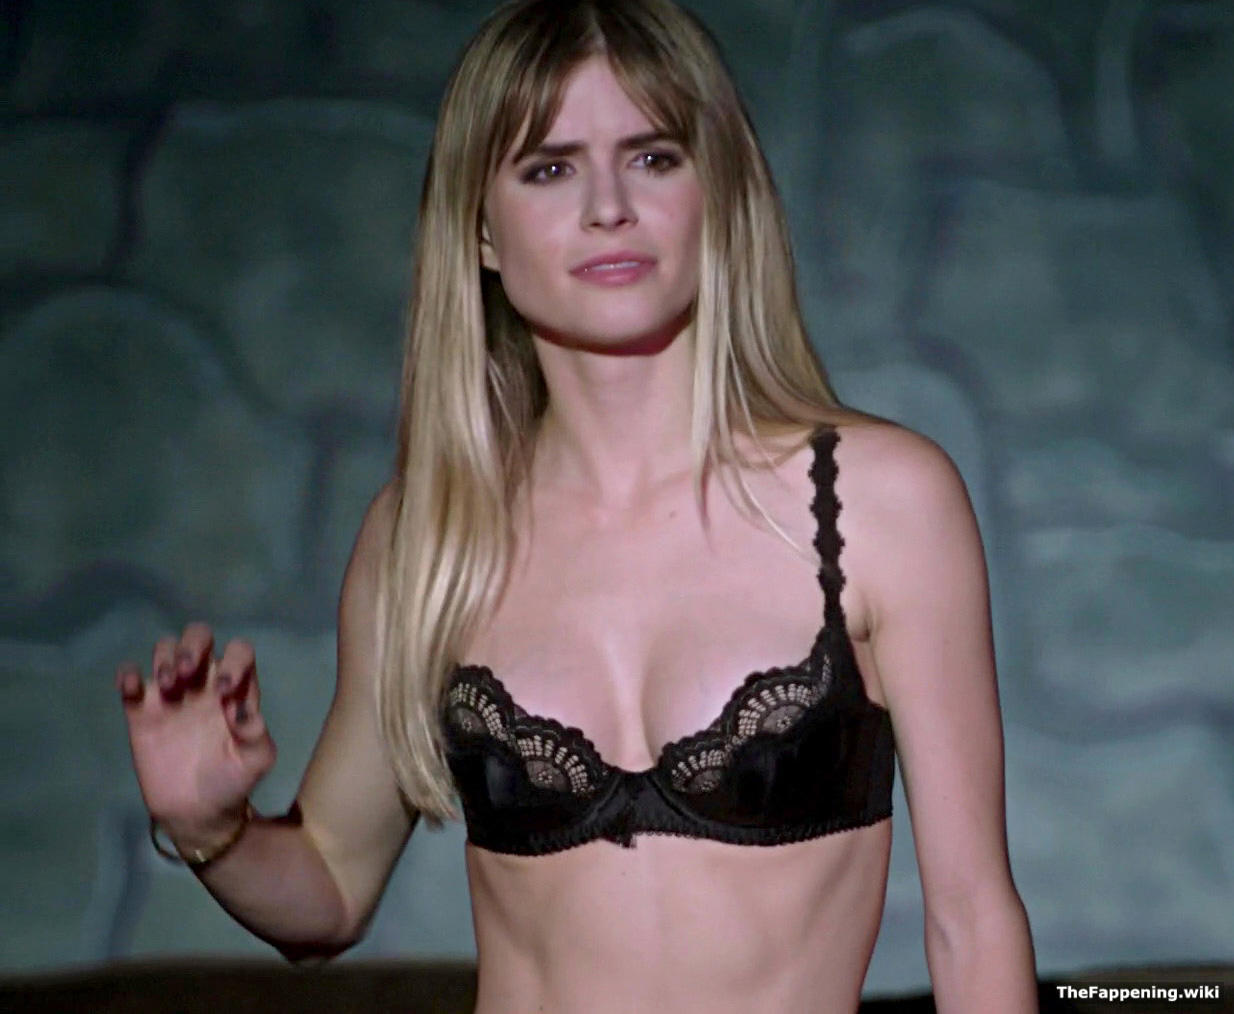 Has melody carlson young nude liz strap action